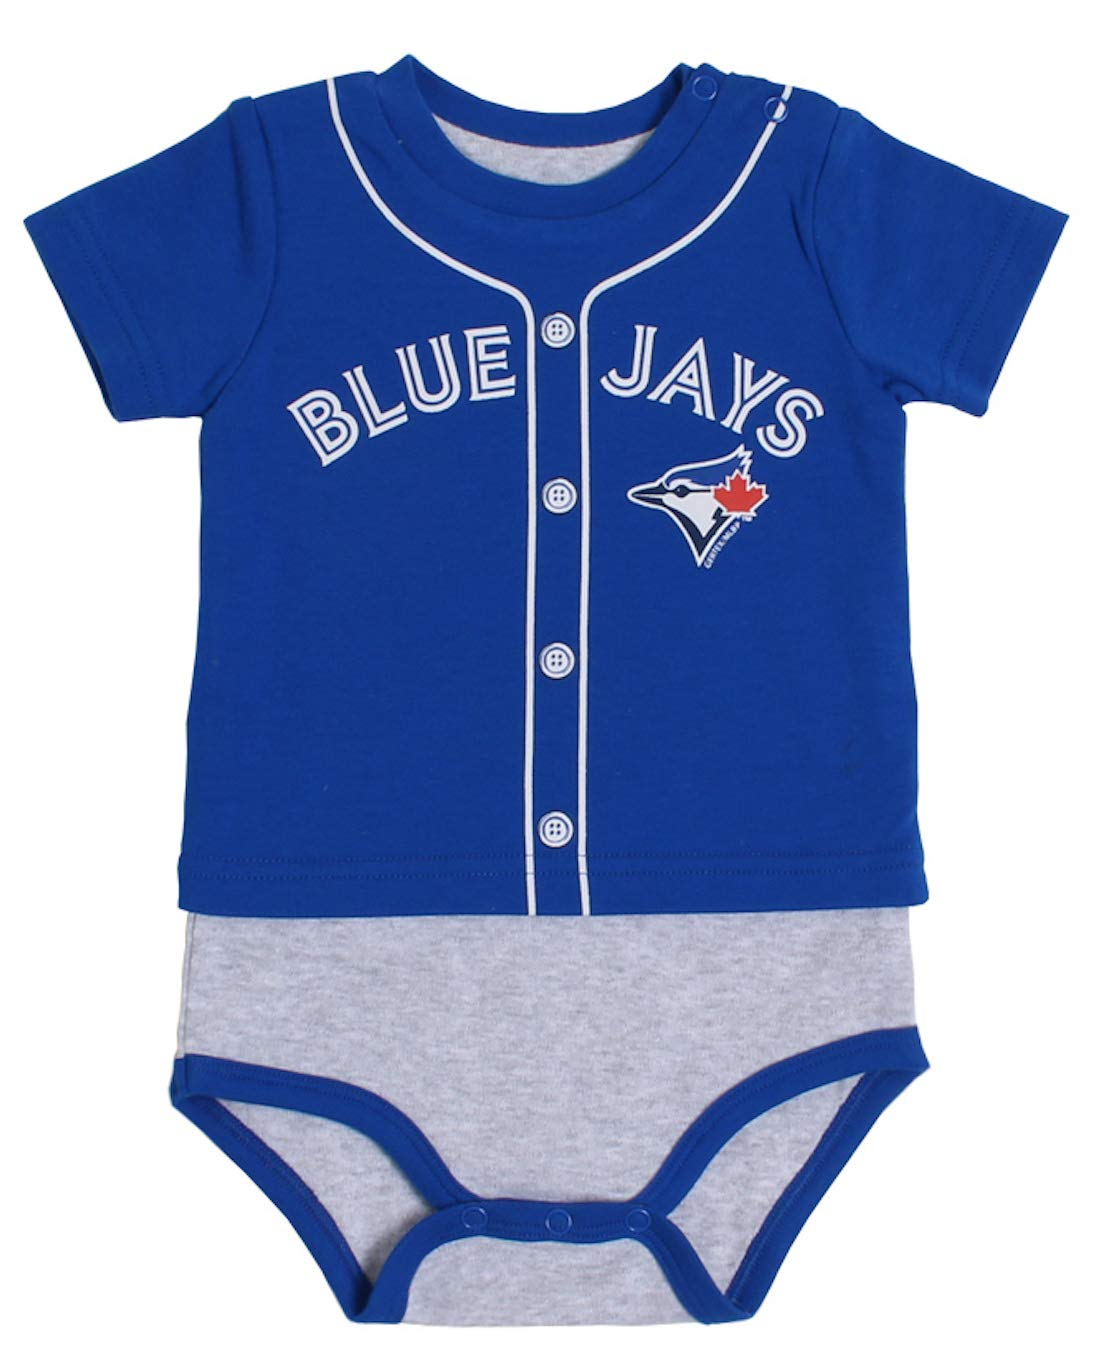 MLB Toronto Blue Jays Toddler T-Shirt Body Suit Set 6 Months